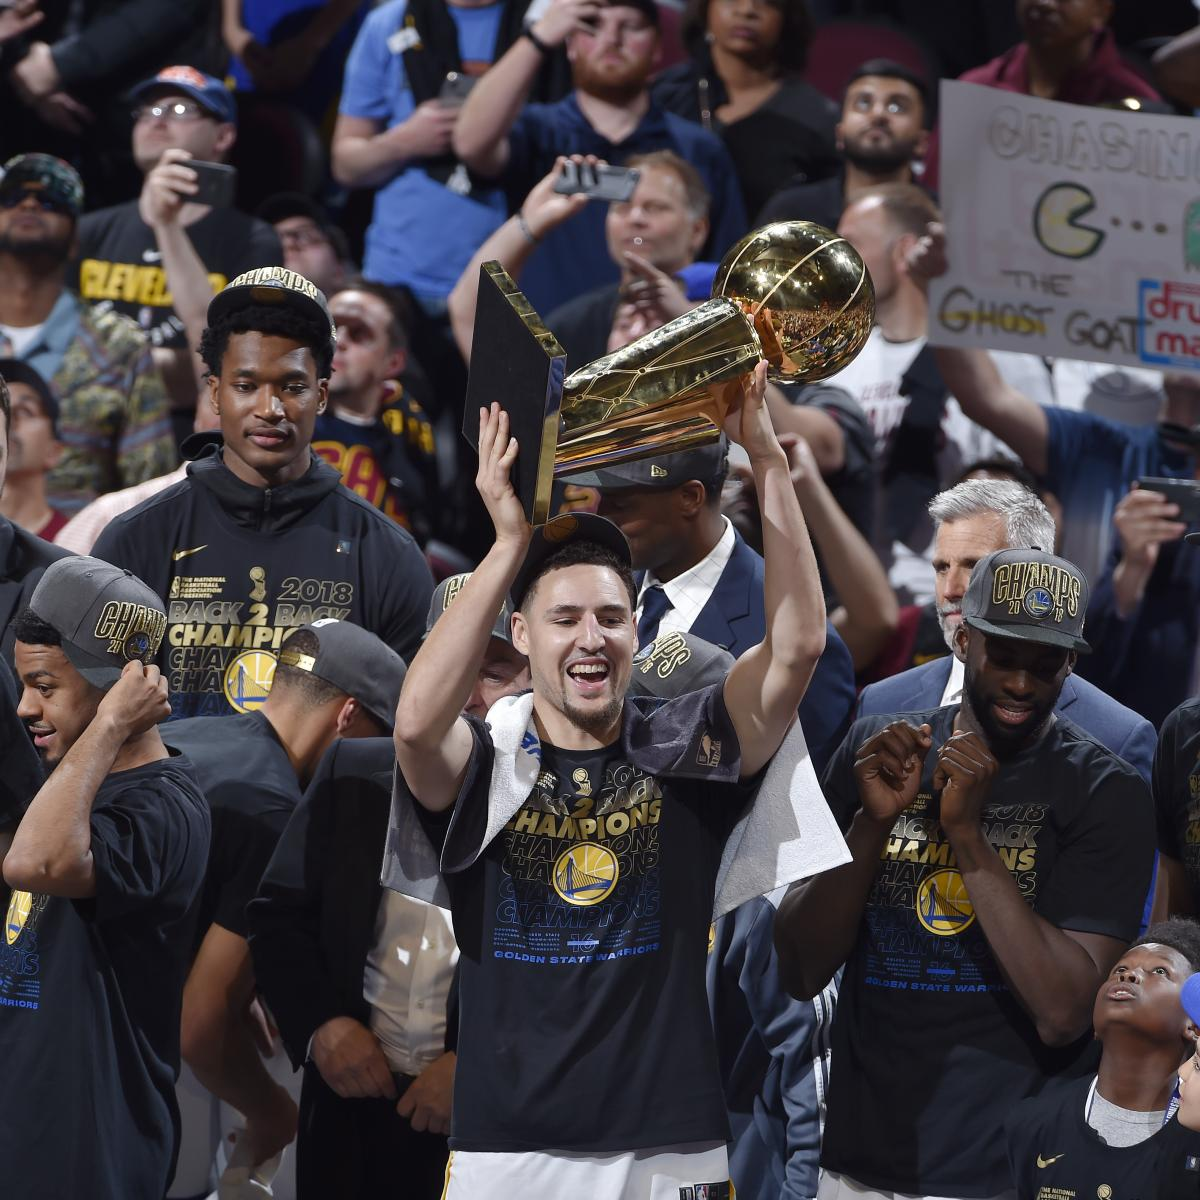 Golden State Warriors Vs Houston Rockets Live Stream 2018: 2018-19 NBA Playoff Odds Released For Lakers, Warriors